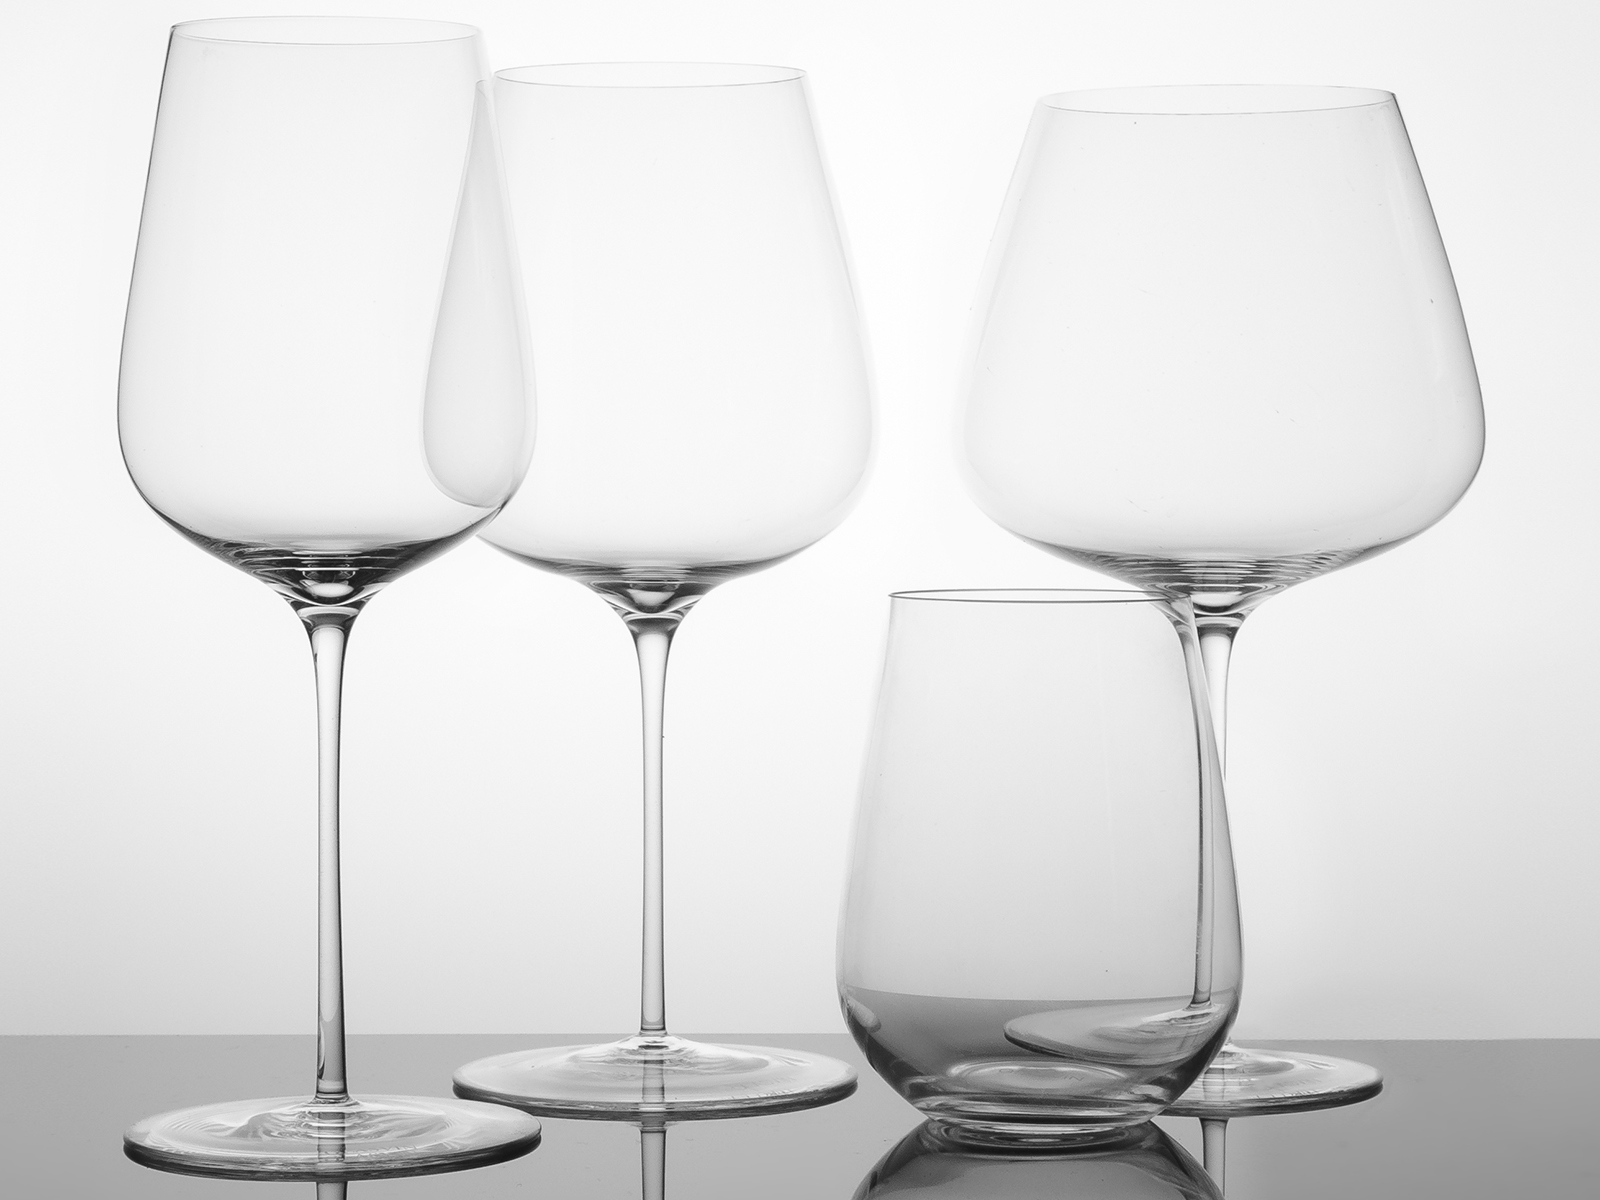 Four wine glasses in the Glasvin range by David Kong